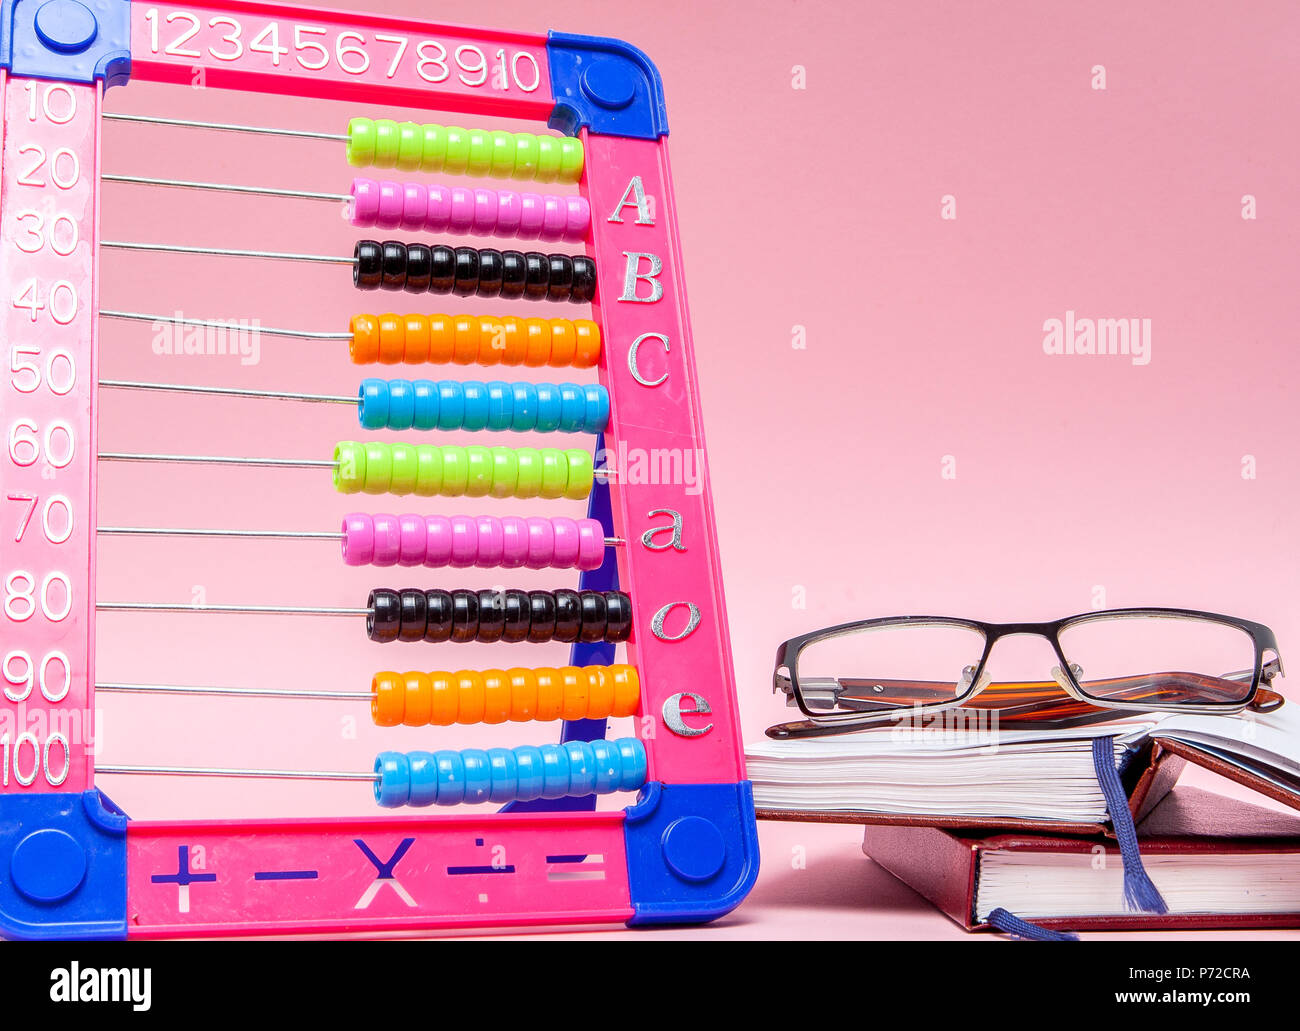 Colored Abacus, Glasses and Notebook on pink background. Education, back to school concept - Stock Image